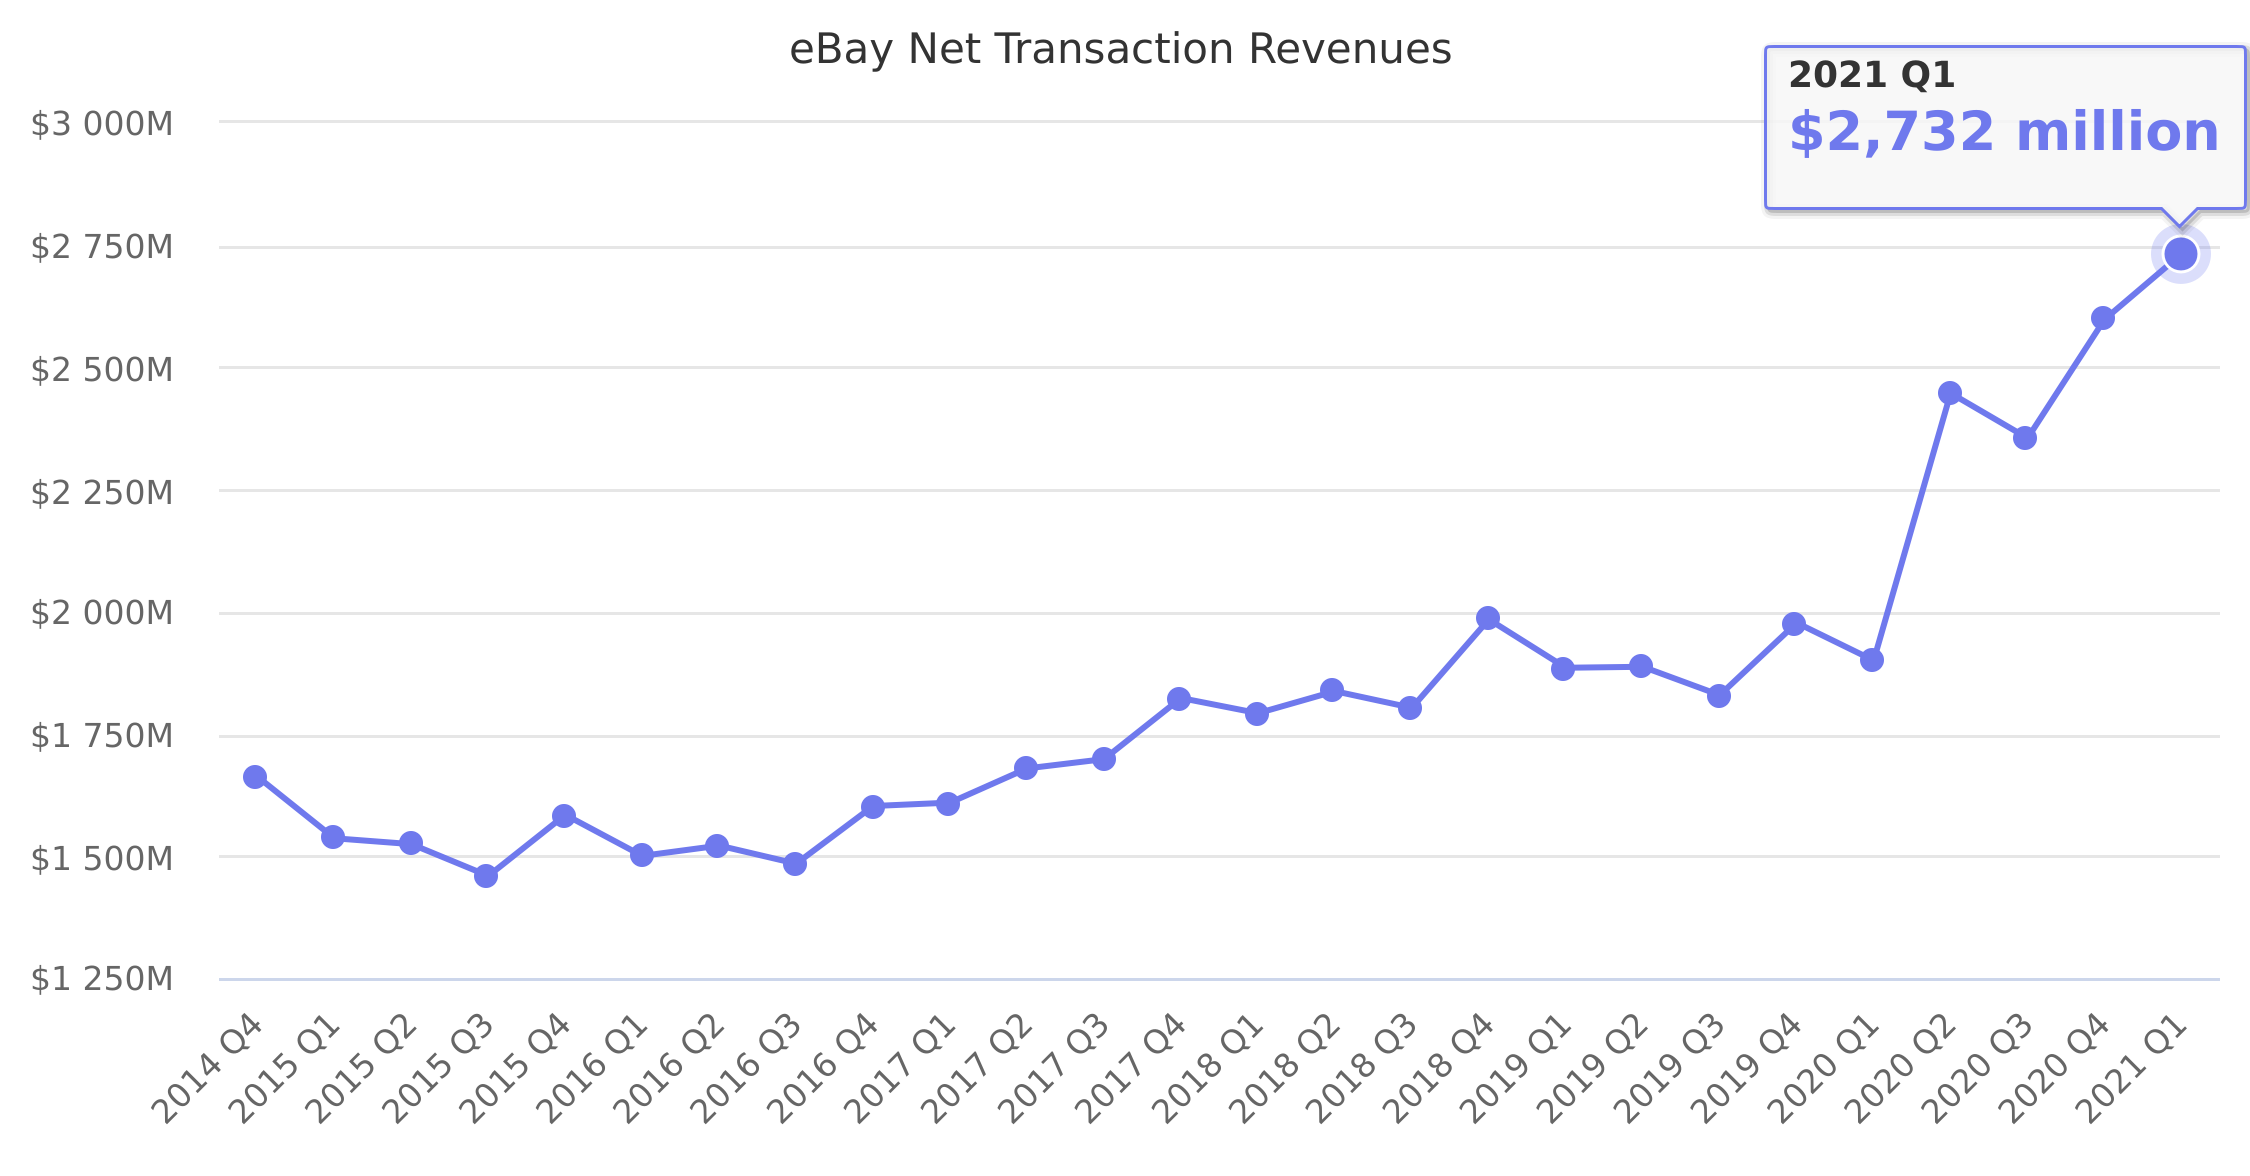 eBay Net Transaction Revenues